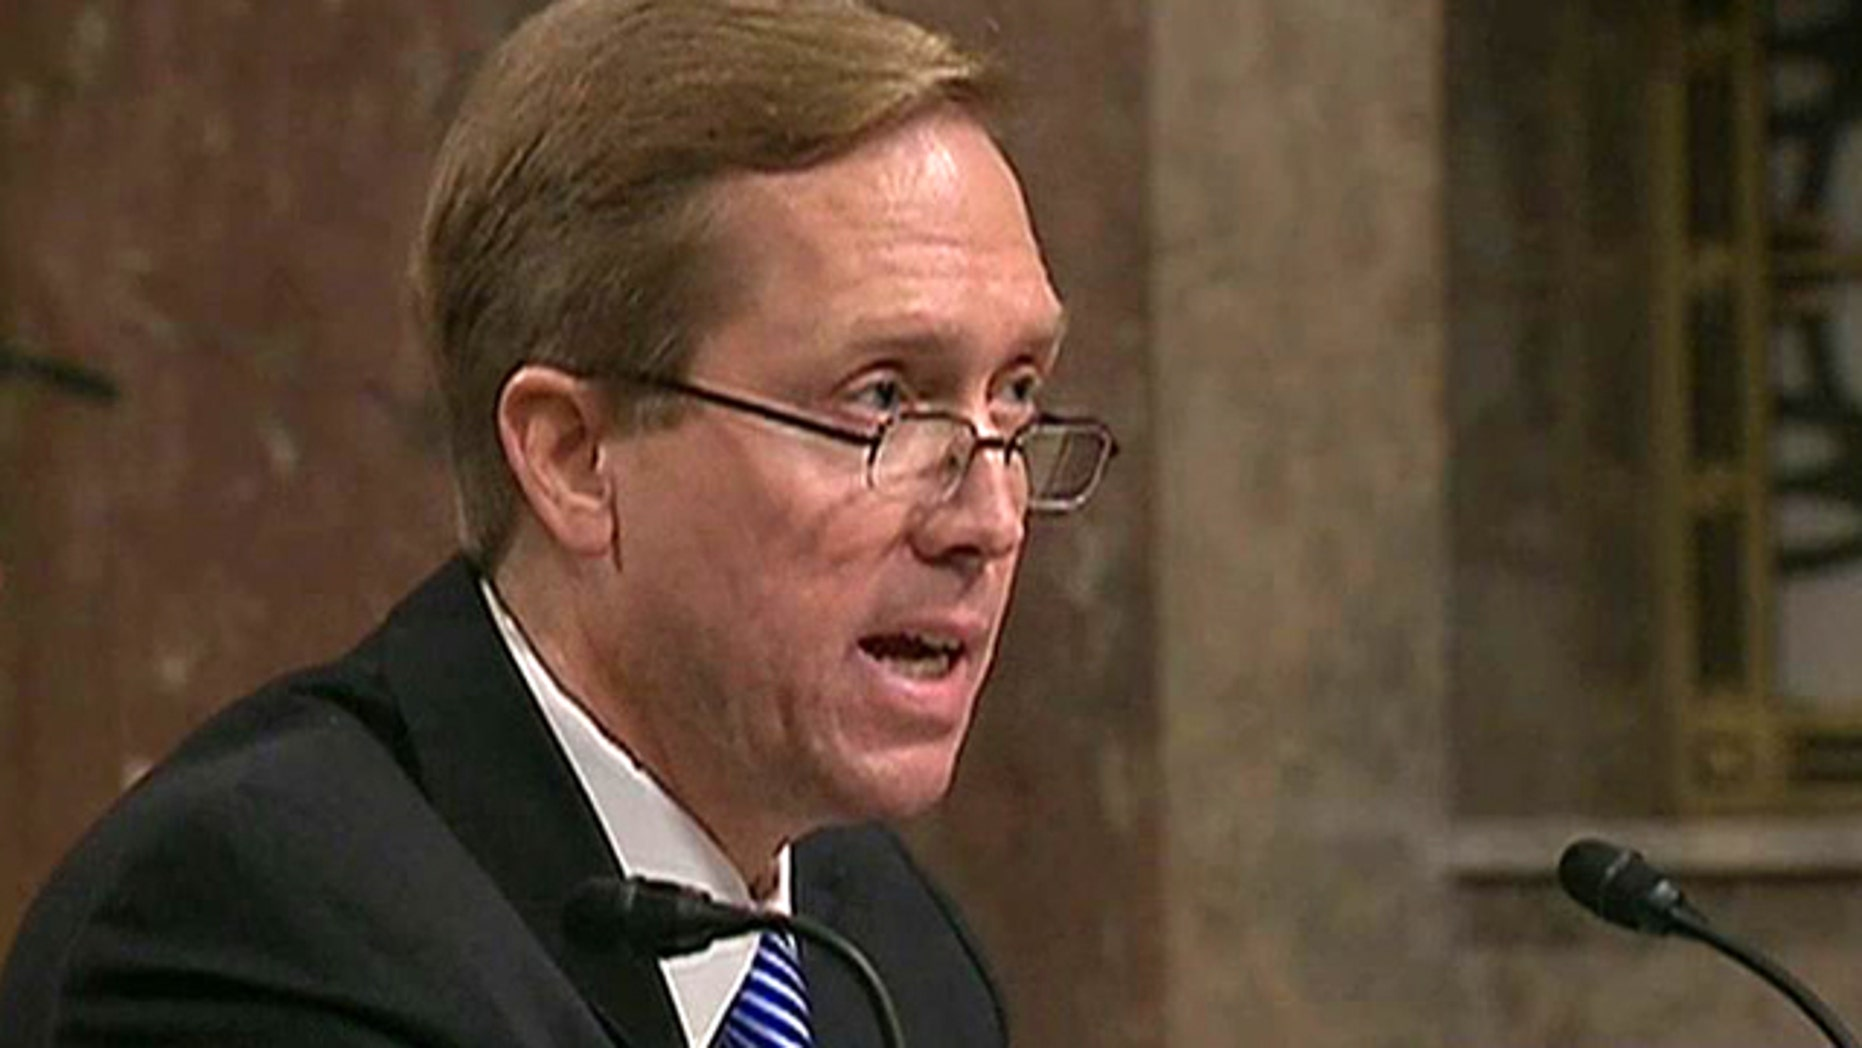 Nov. 17, 2011: Kevin Ohlson, nominated for the U.S. Court of Appeals for the Armed Services, testifies before the Senate Armed Services Committee.